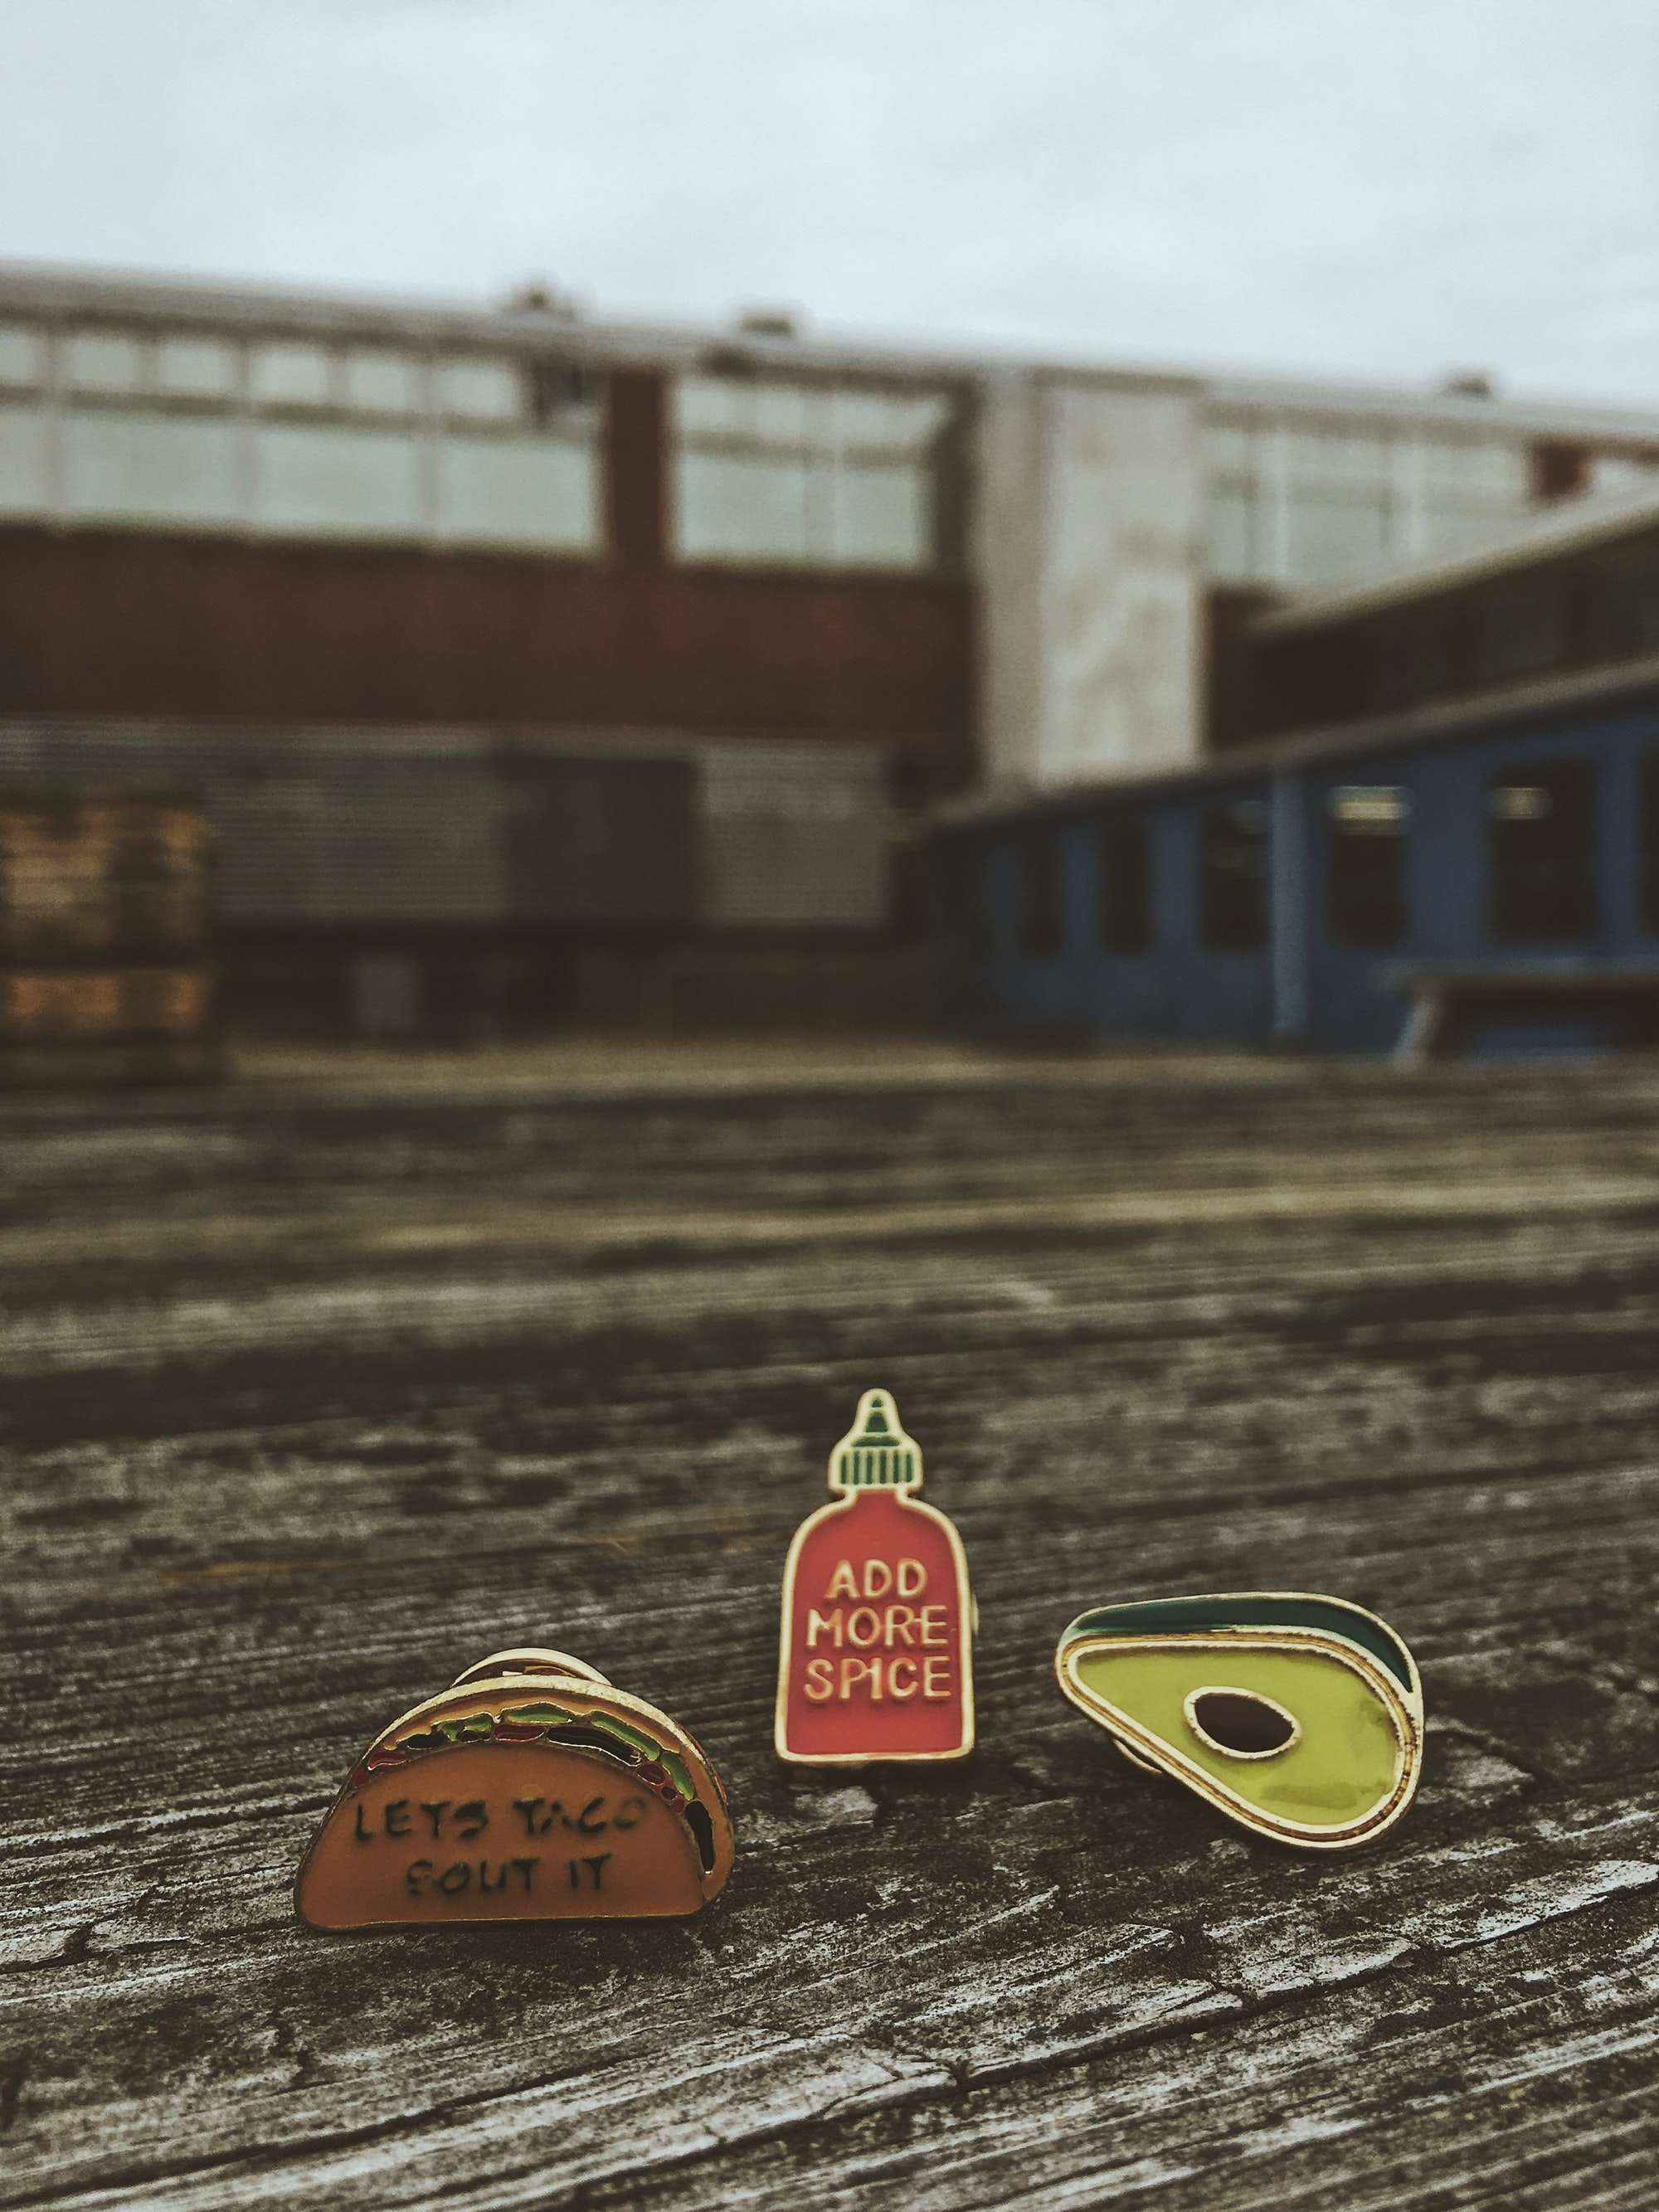 We wanted to shoot these pins to honor one of our favorite upcoming holidays – Cinco de Mayo! Who doesn't love authentic Mexican cuisine, tacos, quesadillas, pambazos, tamales… you name it! We pay homage sporting this cute little pins with their quirky sayings.